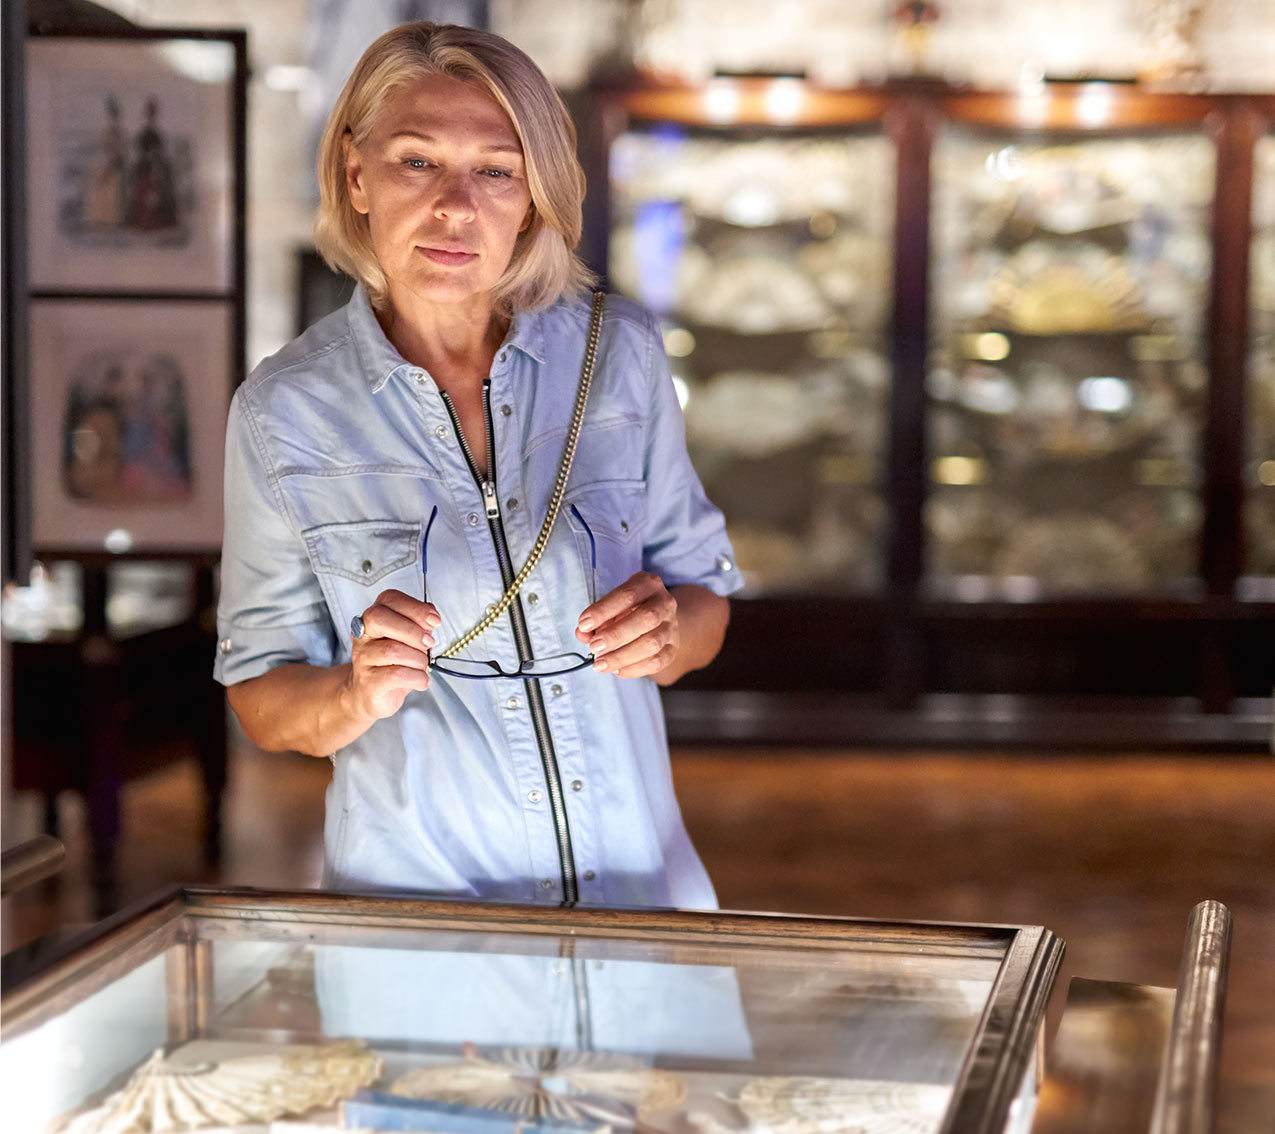 blonde haired lady with blue shirt on holding glasses and looking down into glass cabinet containing artefacts